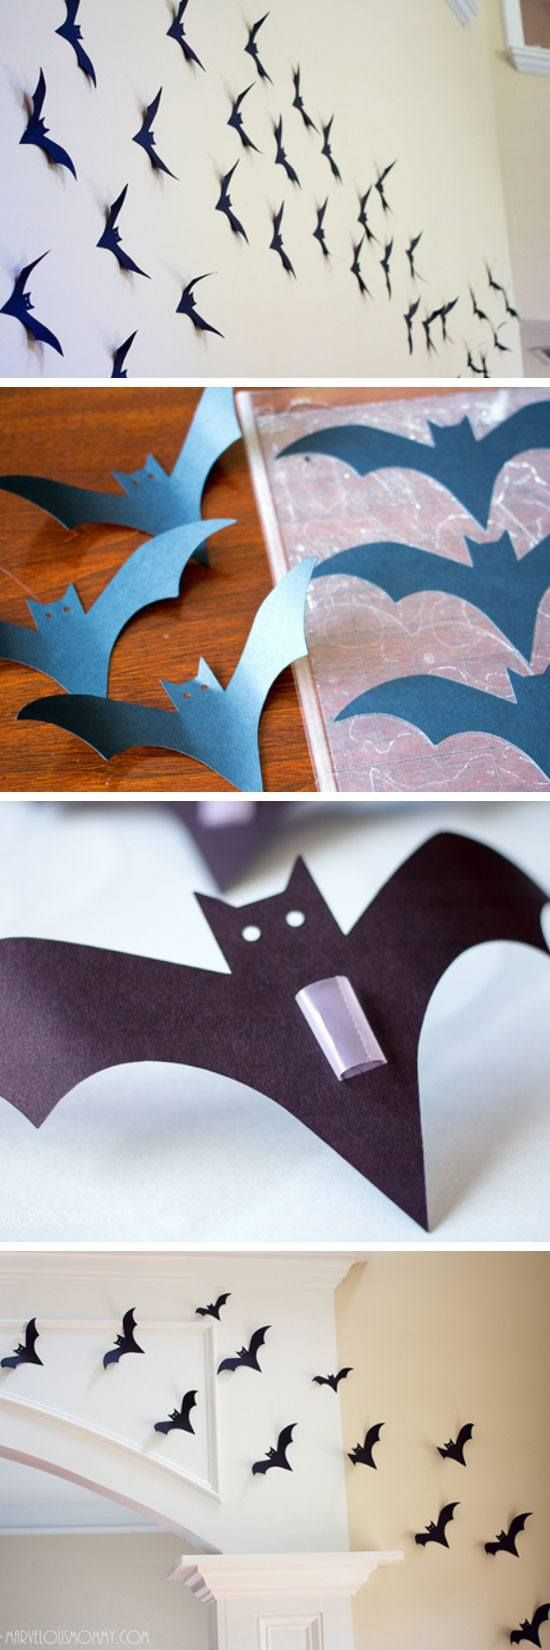 25 diy halloween decorating ideas for kids on a budget - Easy Halloween Decoration Ideas